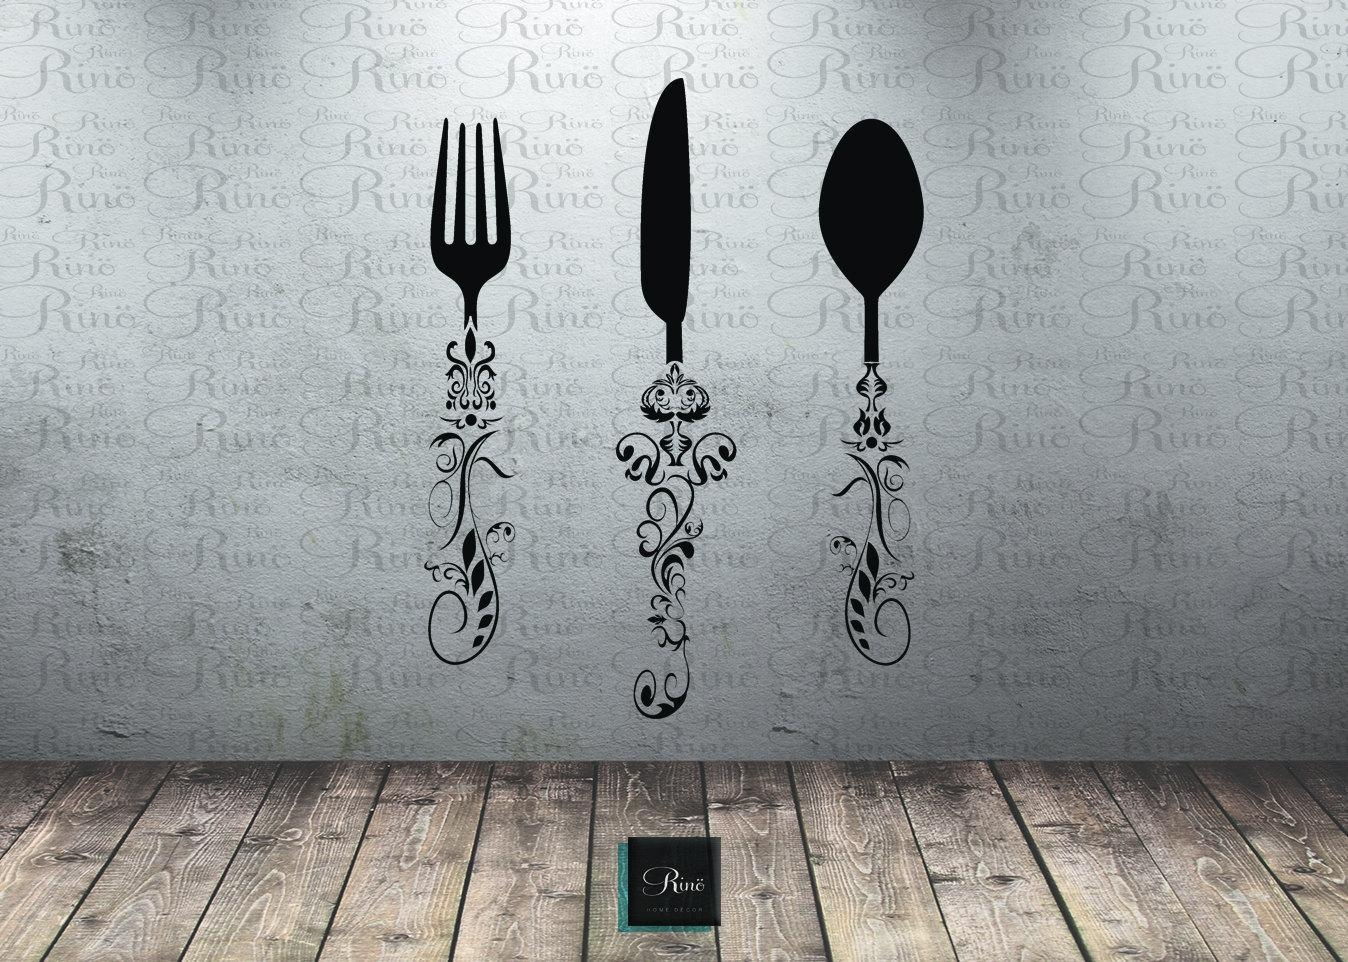 Utensil Decals (5Ft) Kitchen Wall Decal – Knife Spoon Fork Wall With Regard To Utensil Wall Art (View 11 of 21)